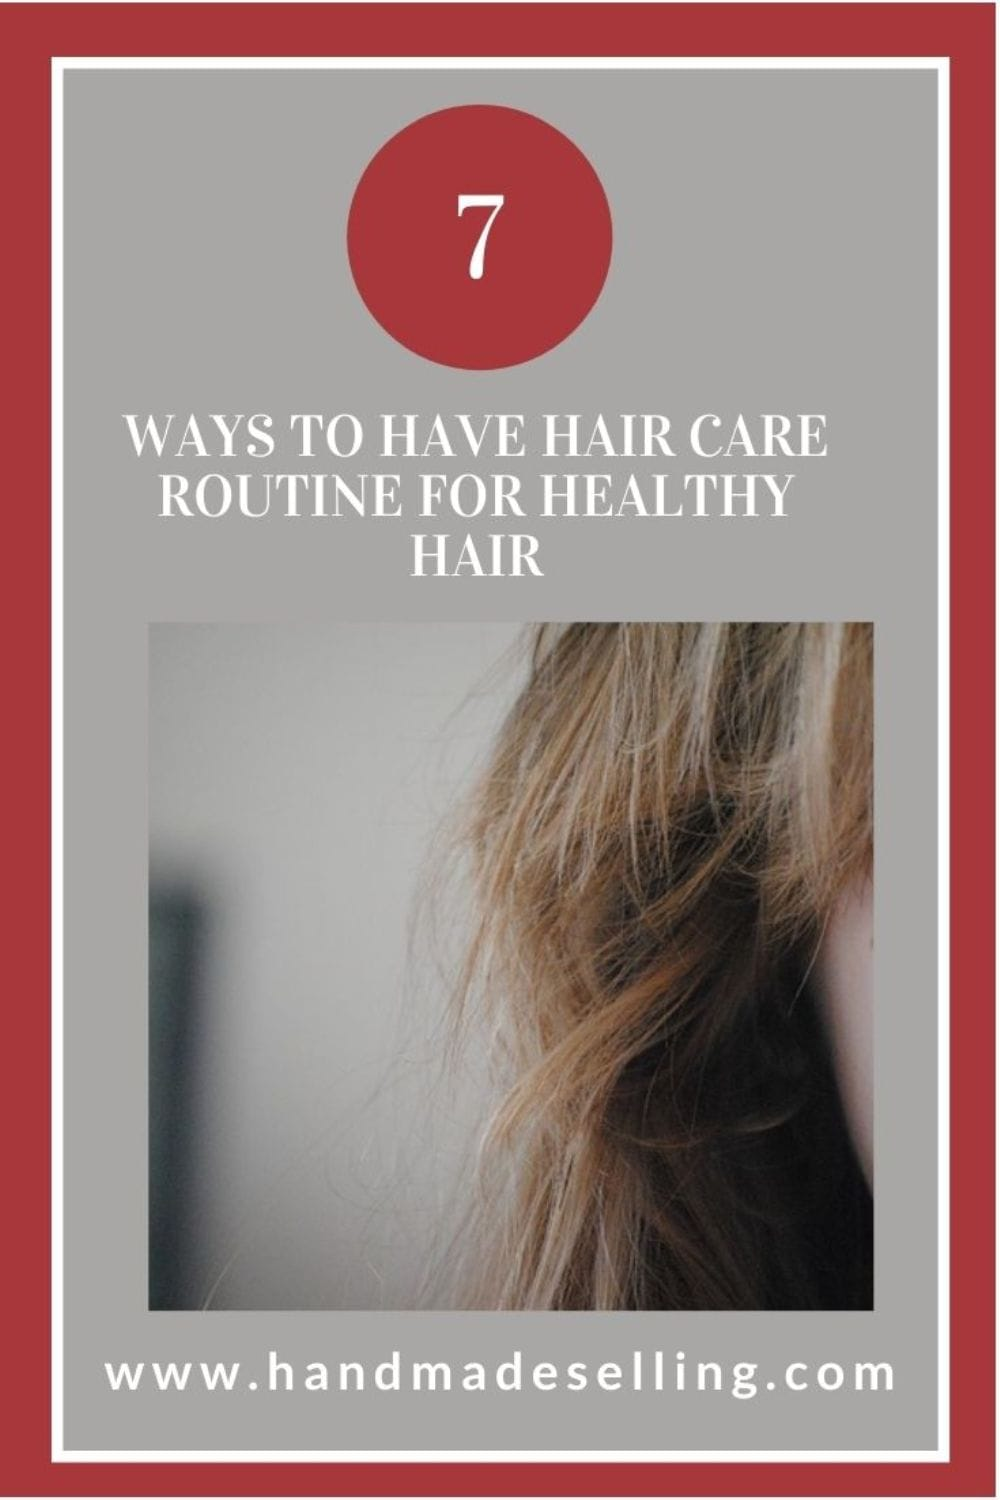 hair care routine for healthy hair